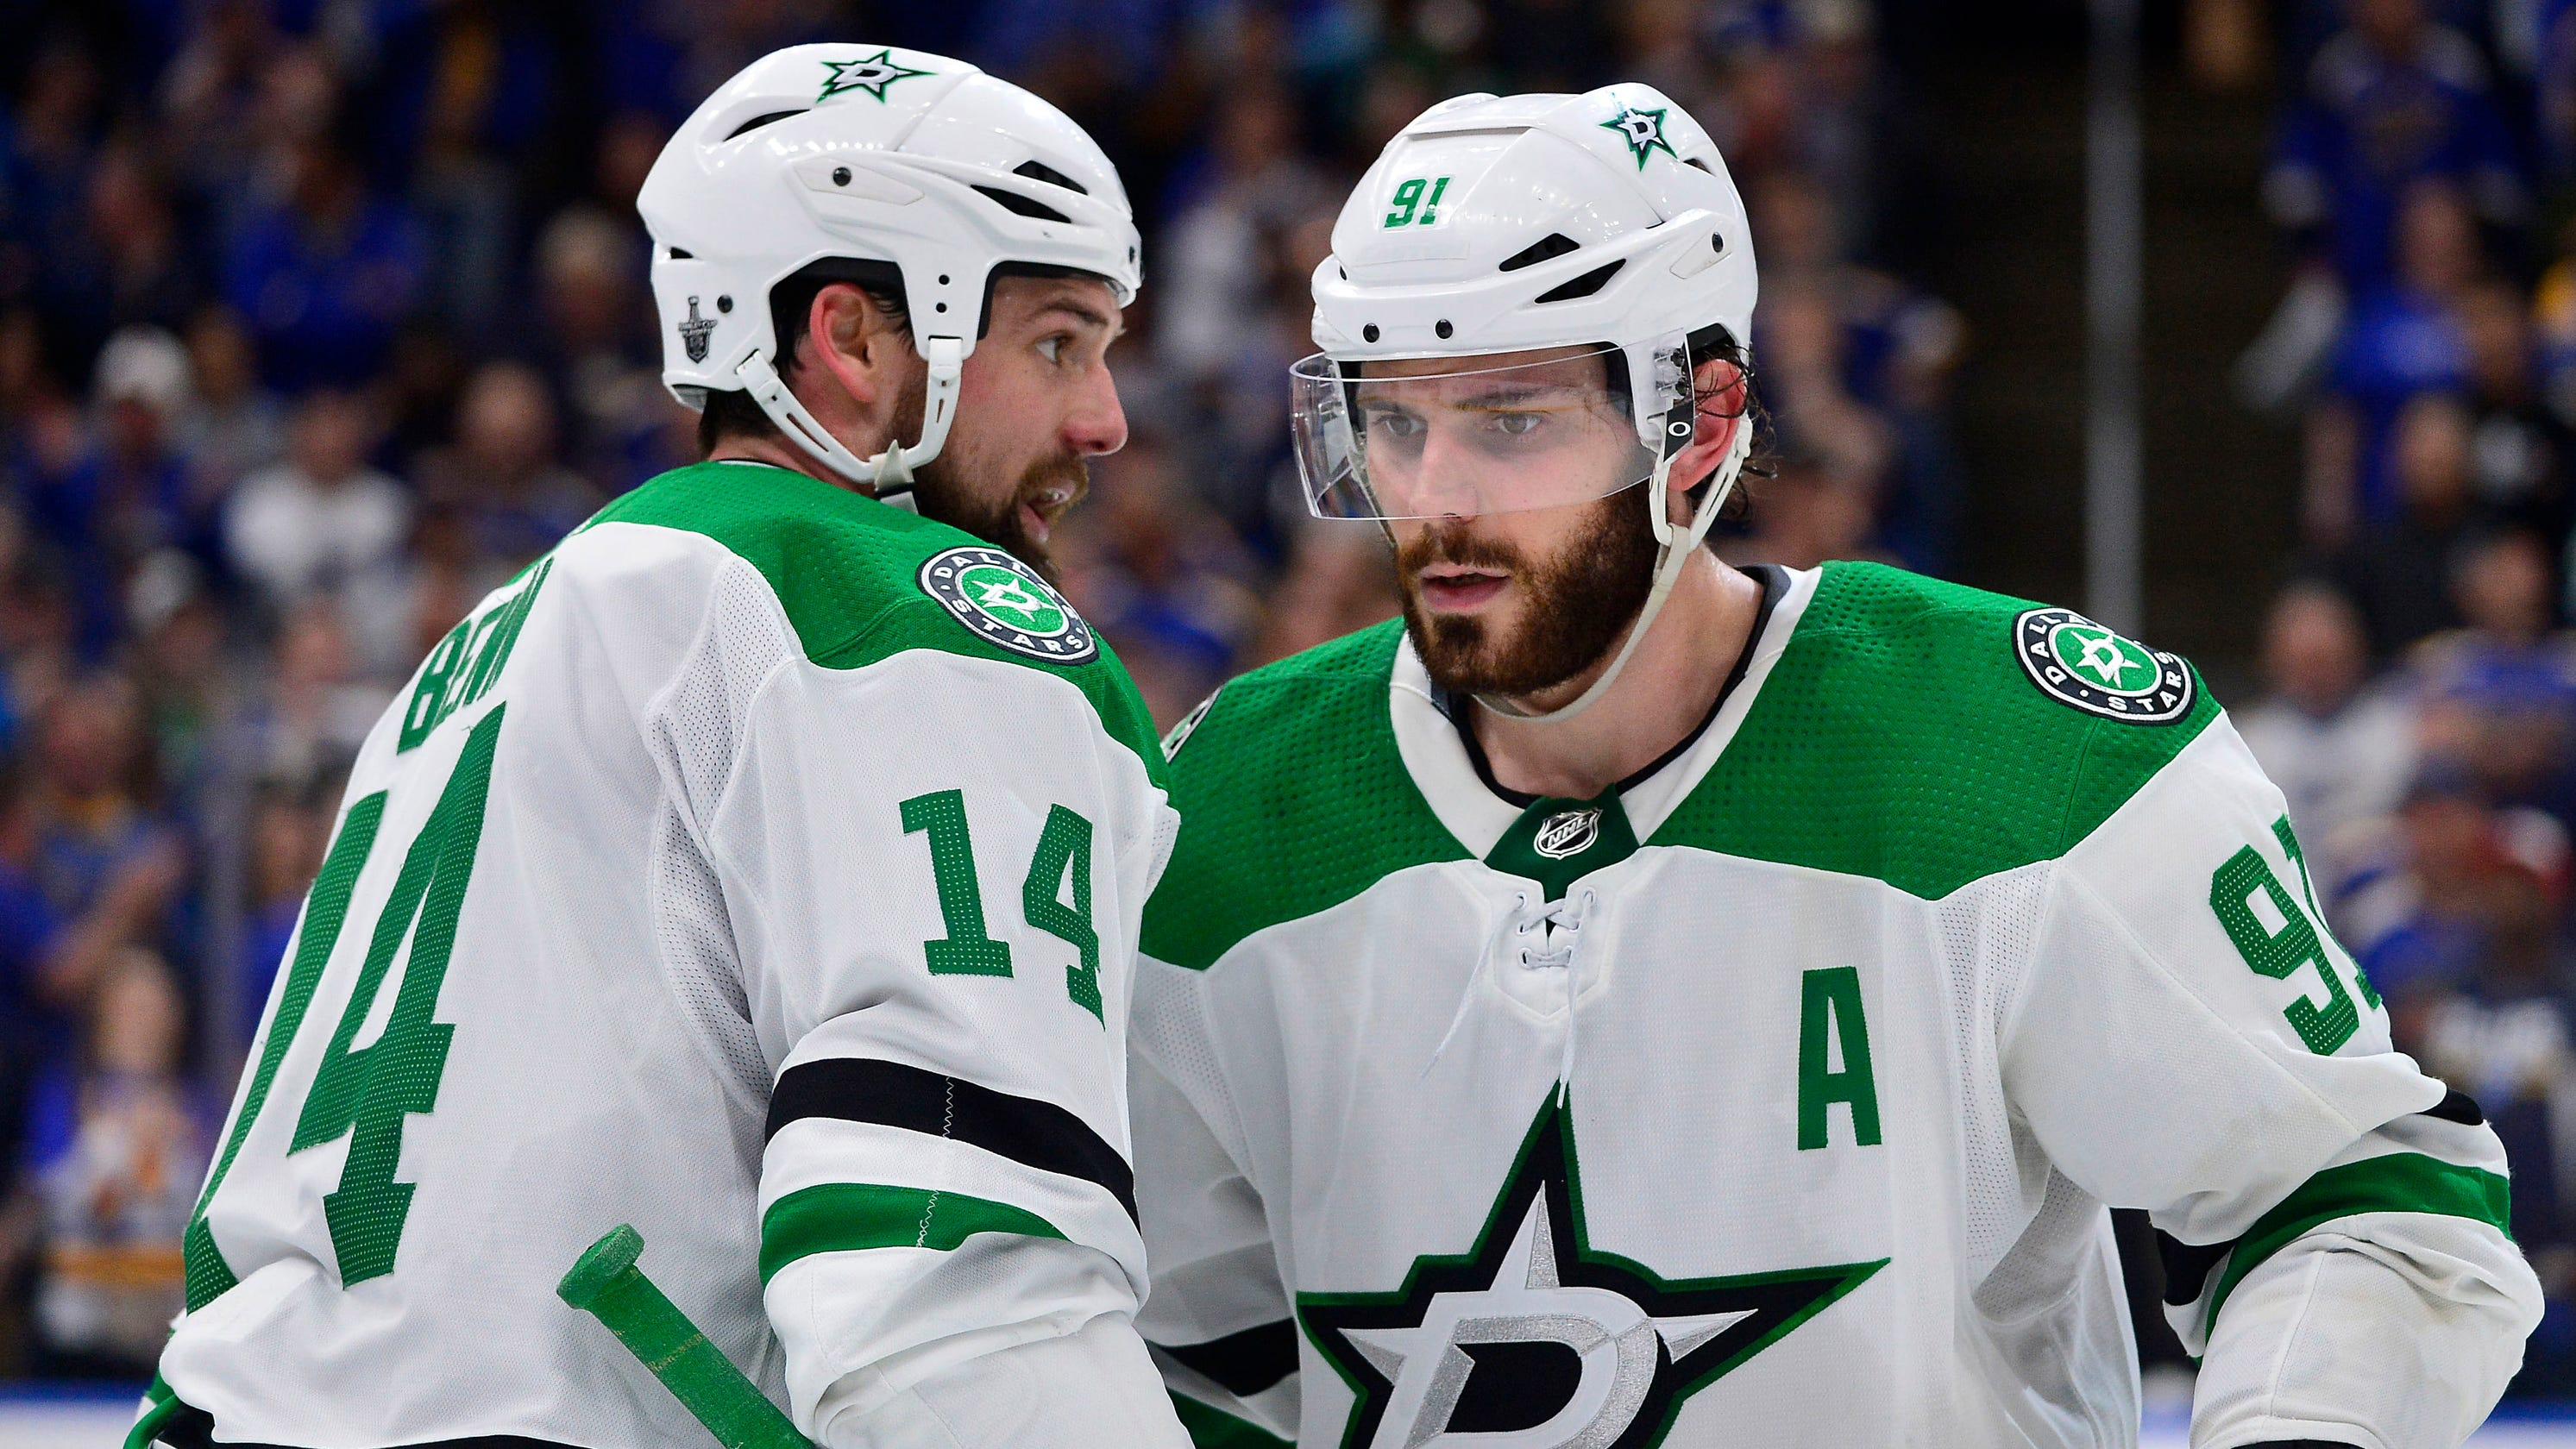 fcafa014877 Game 7 picks: Will St. Louis Blues or Dallas Stars win and reach conference  finals?